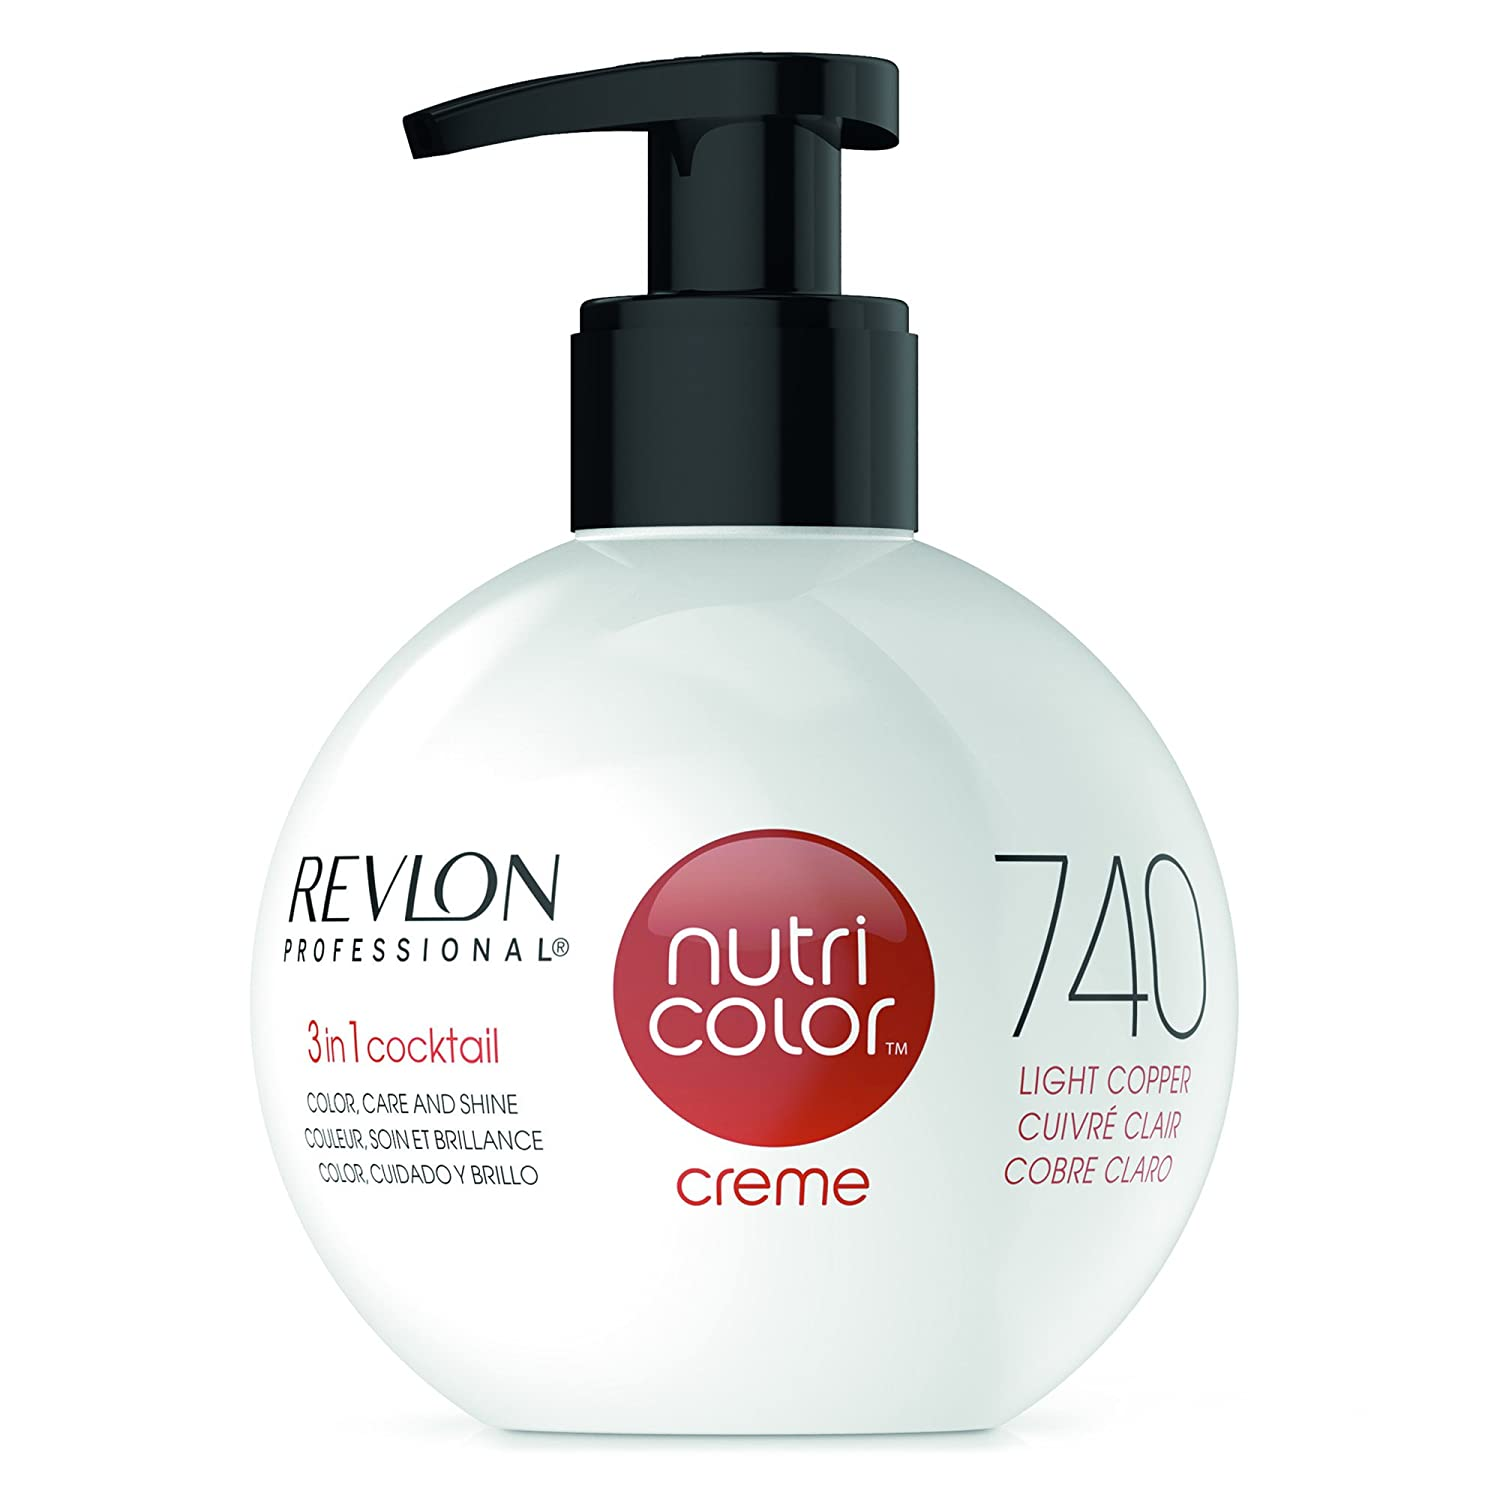 Revlon Professional Nutri Color Creme #740-Light Copper 270 ml - 270 ml